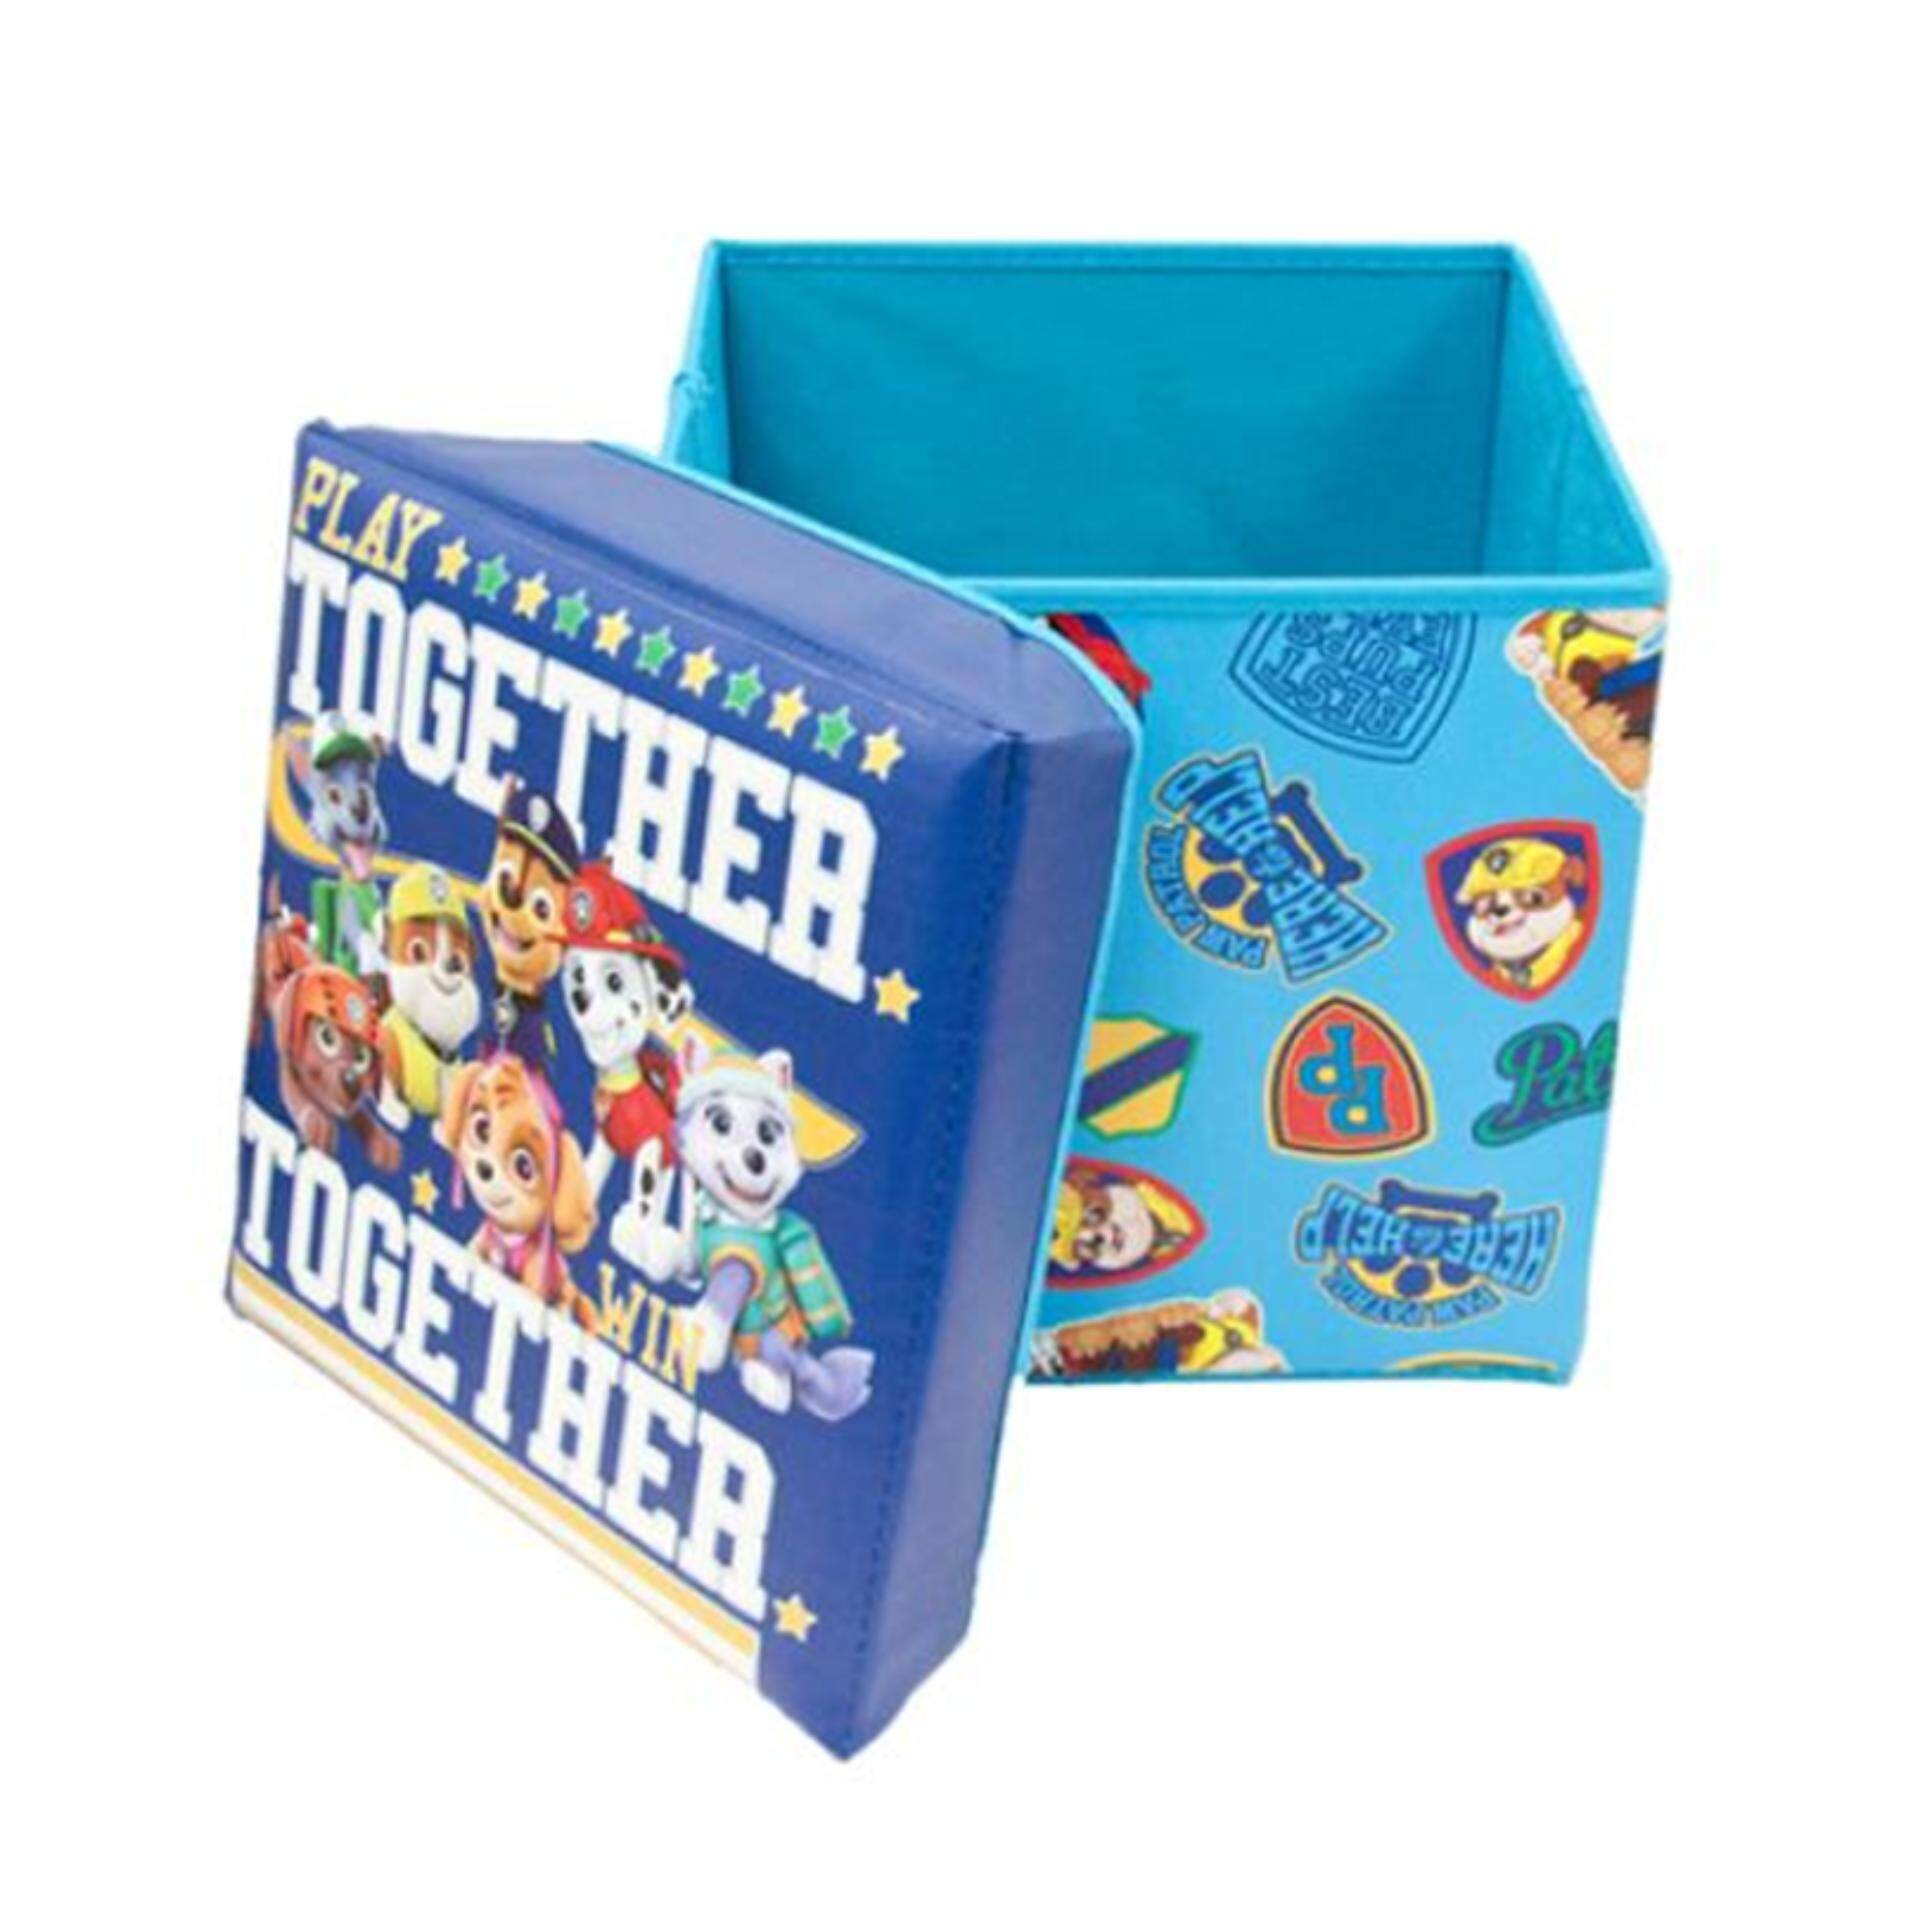 Paw Patrol Storage Box - Blue Colour